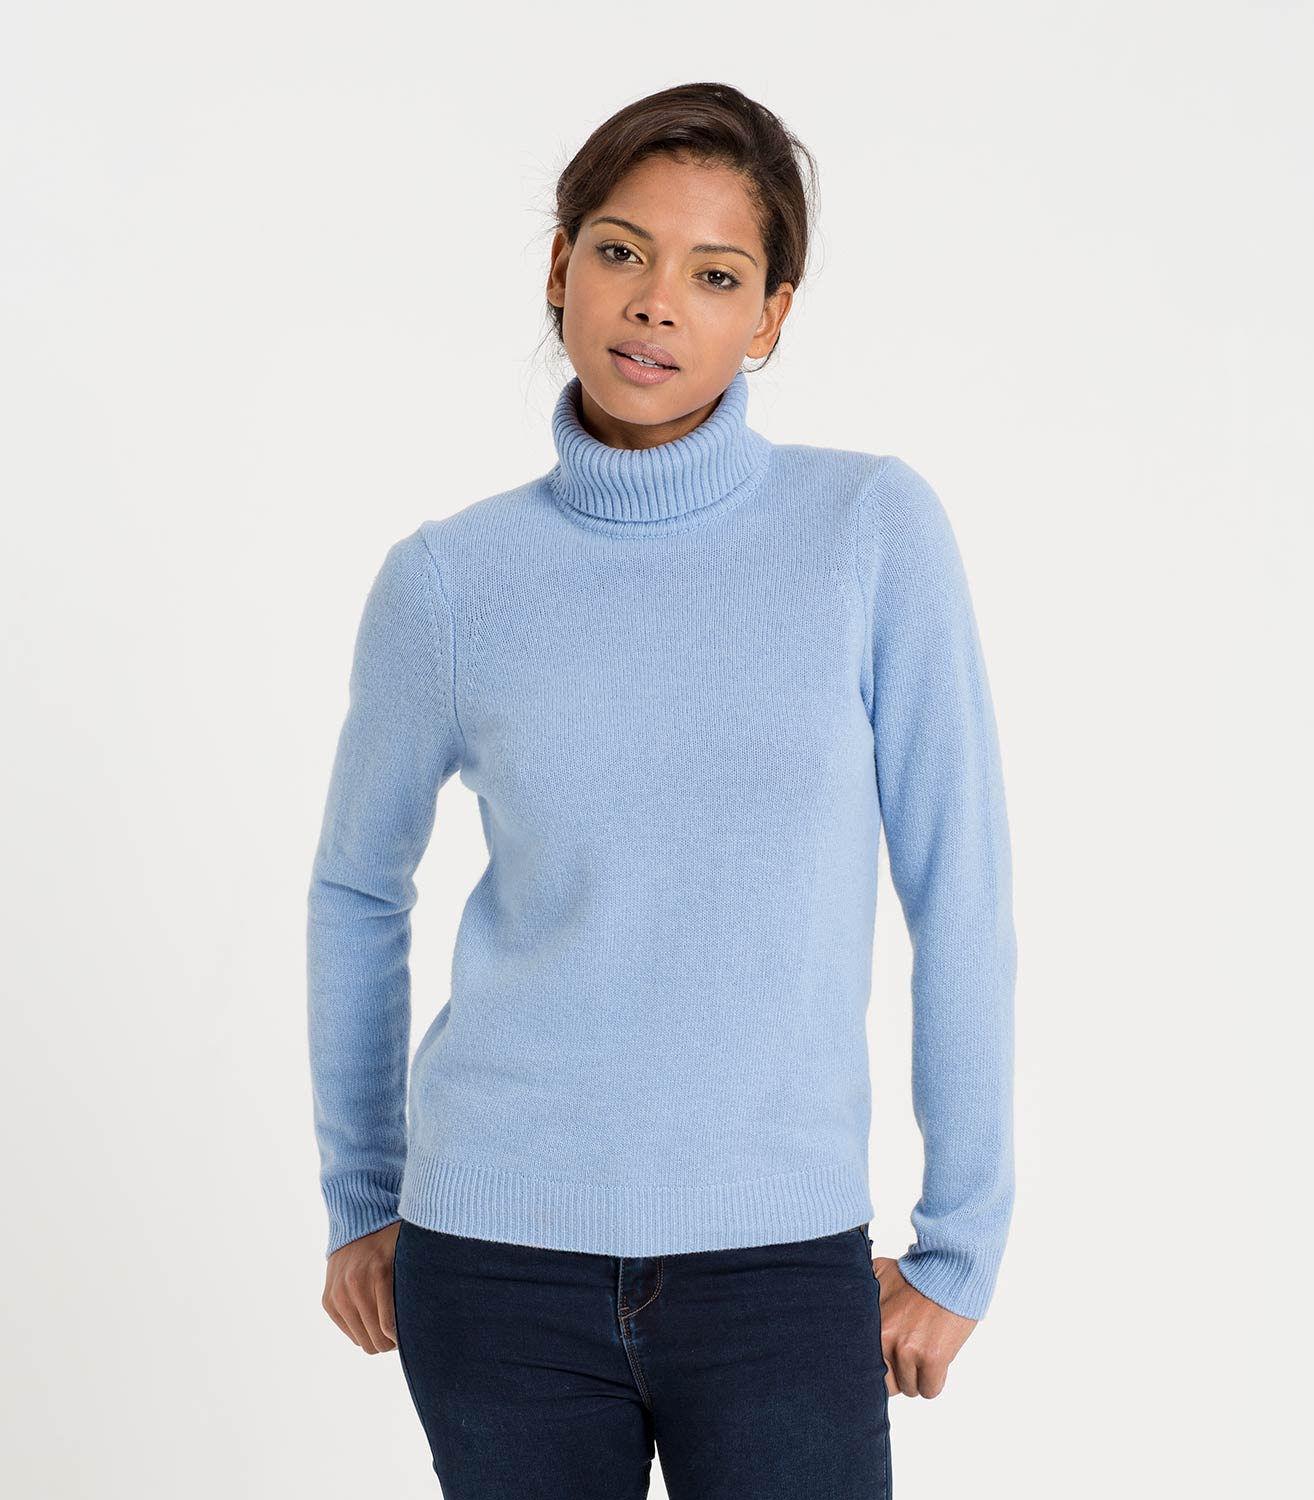 Welcome to our women's range, where you'll find a huge selection of WoolOvers jumpers, cardigans, ponchos, dresses, and more, all in high-quality, all-natural materials. Shop securely on WoolOvers UK.